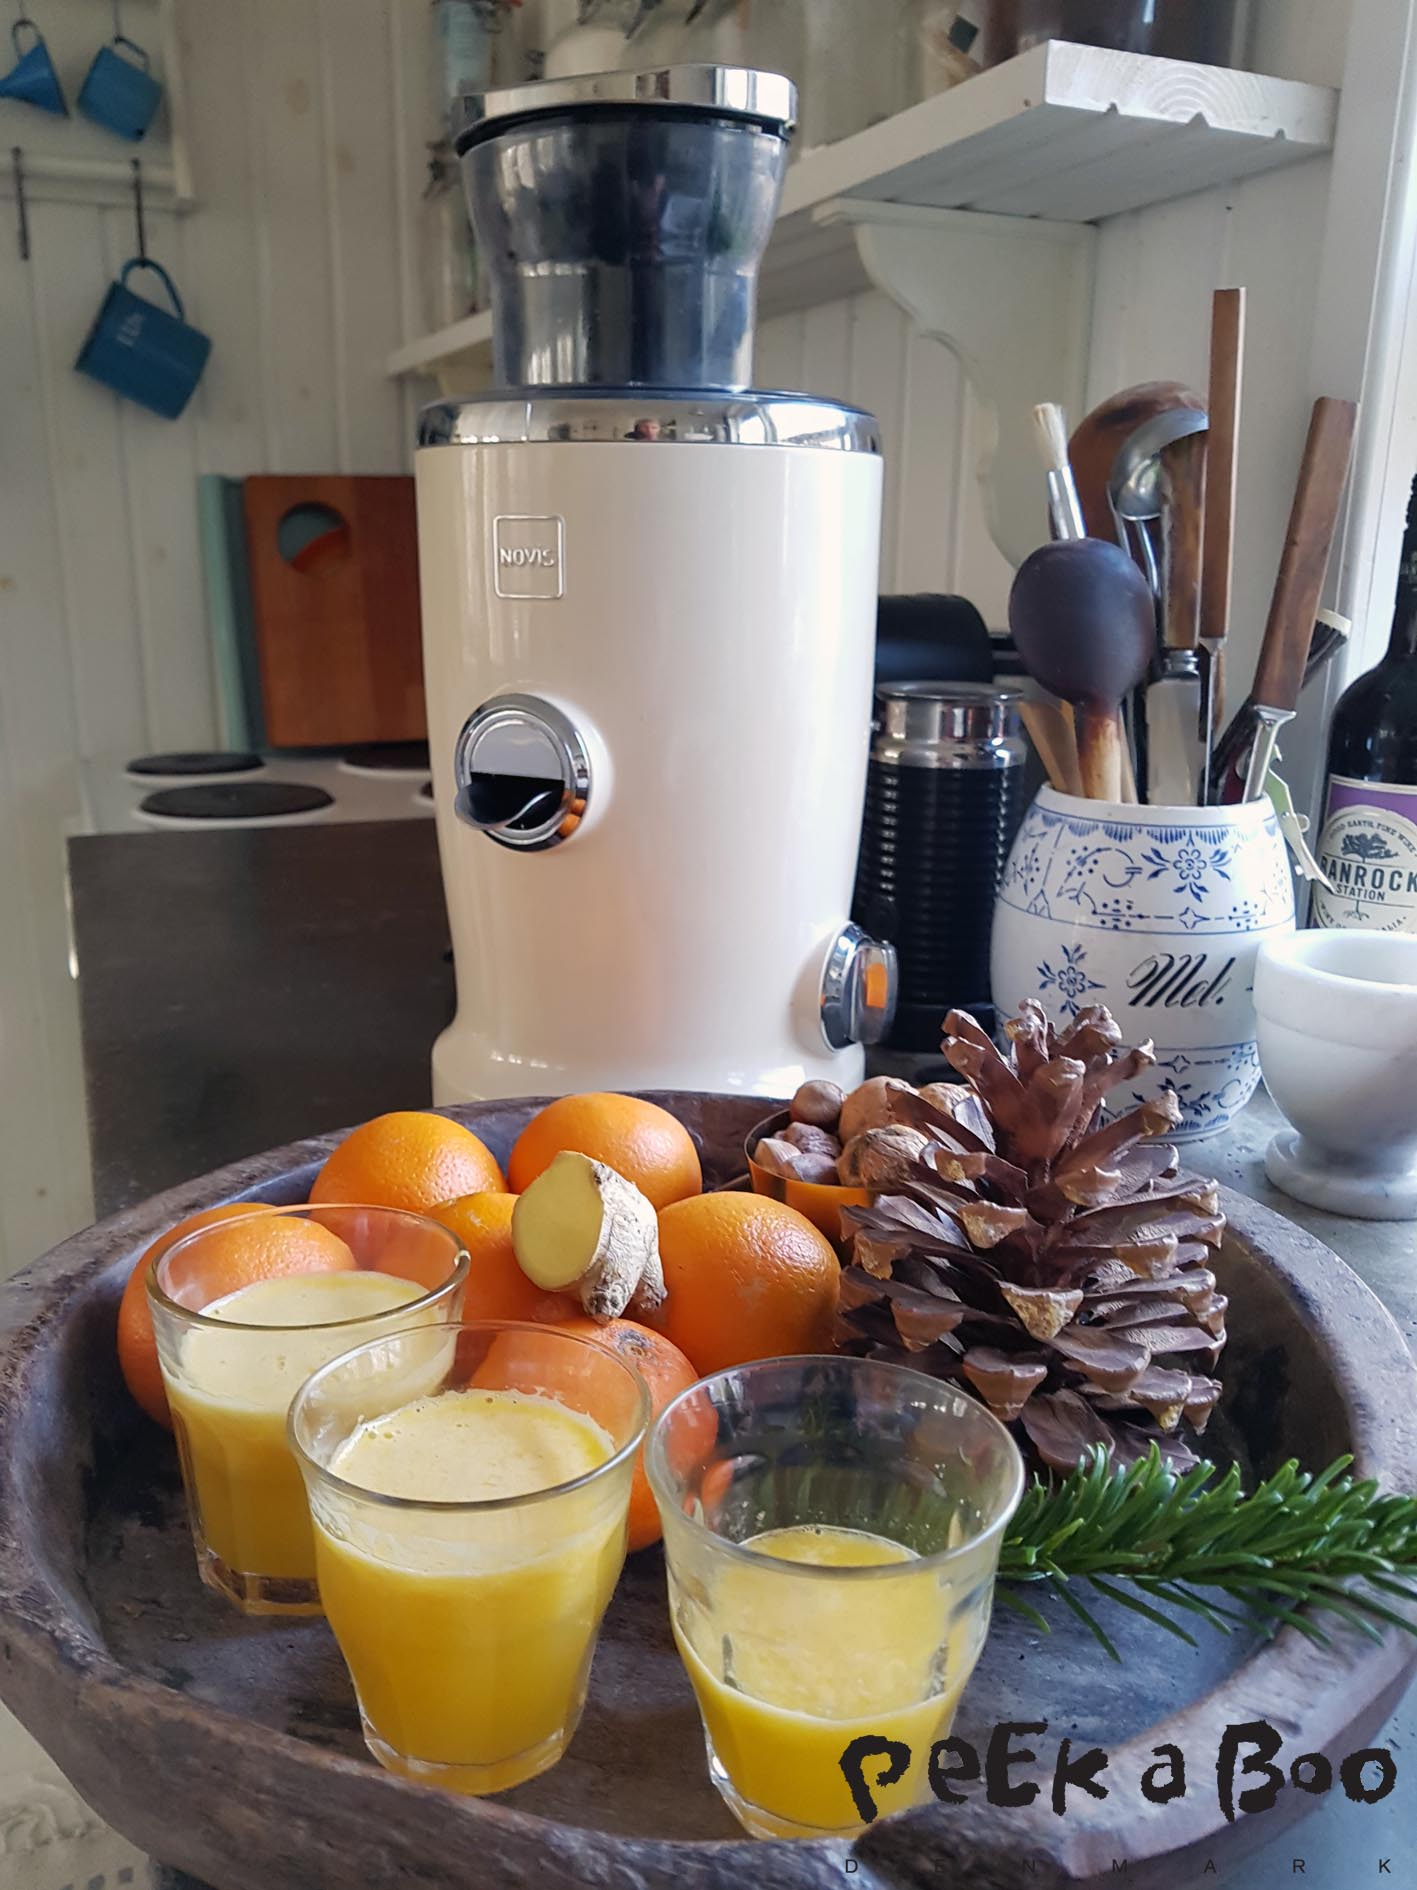 Novis Juicer making get-well soon juice.